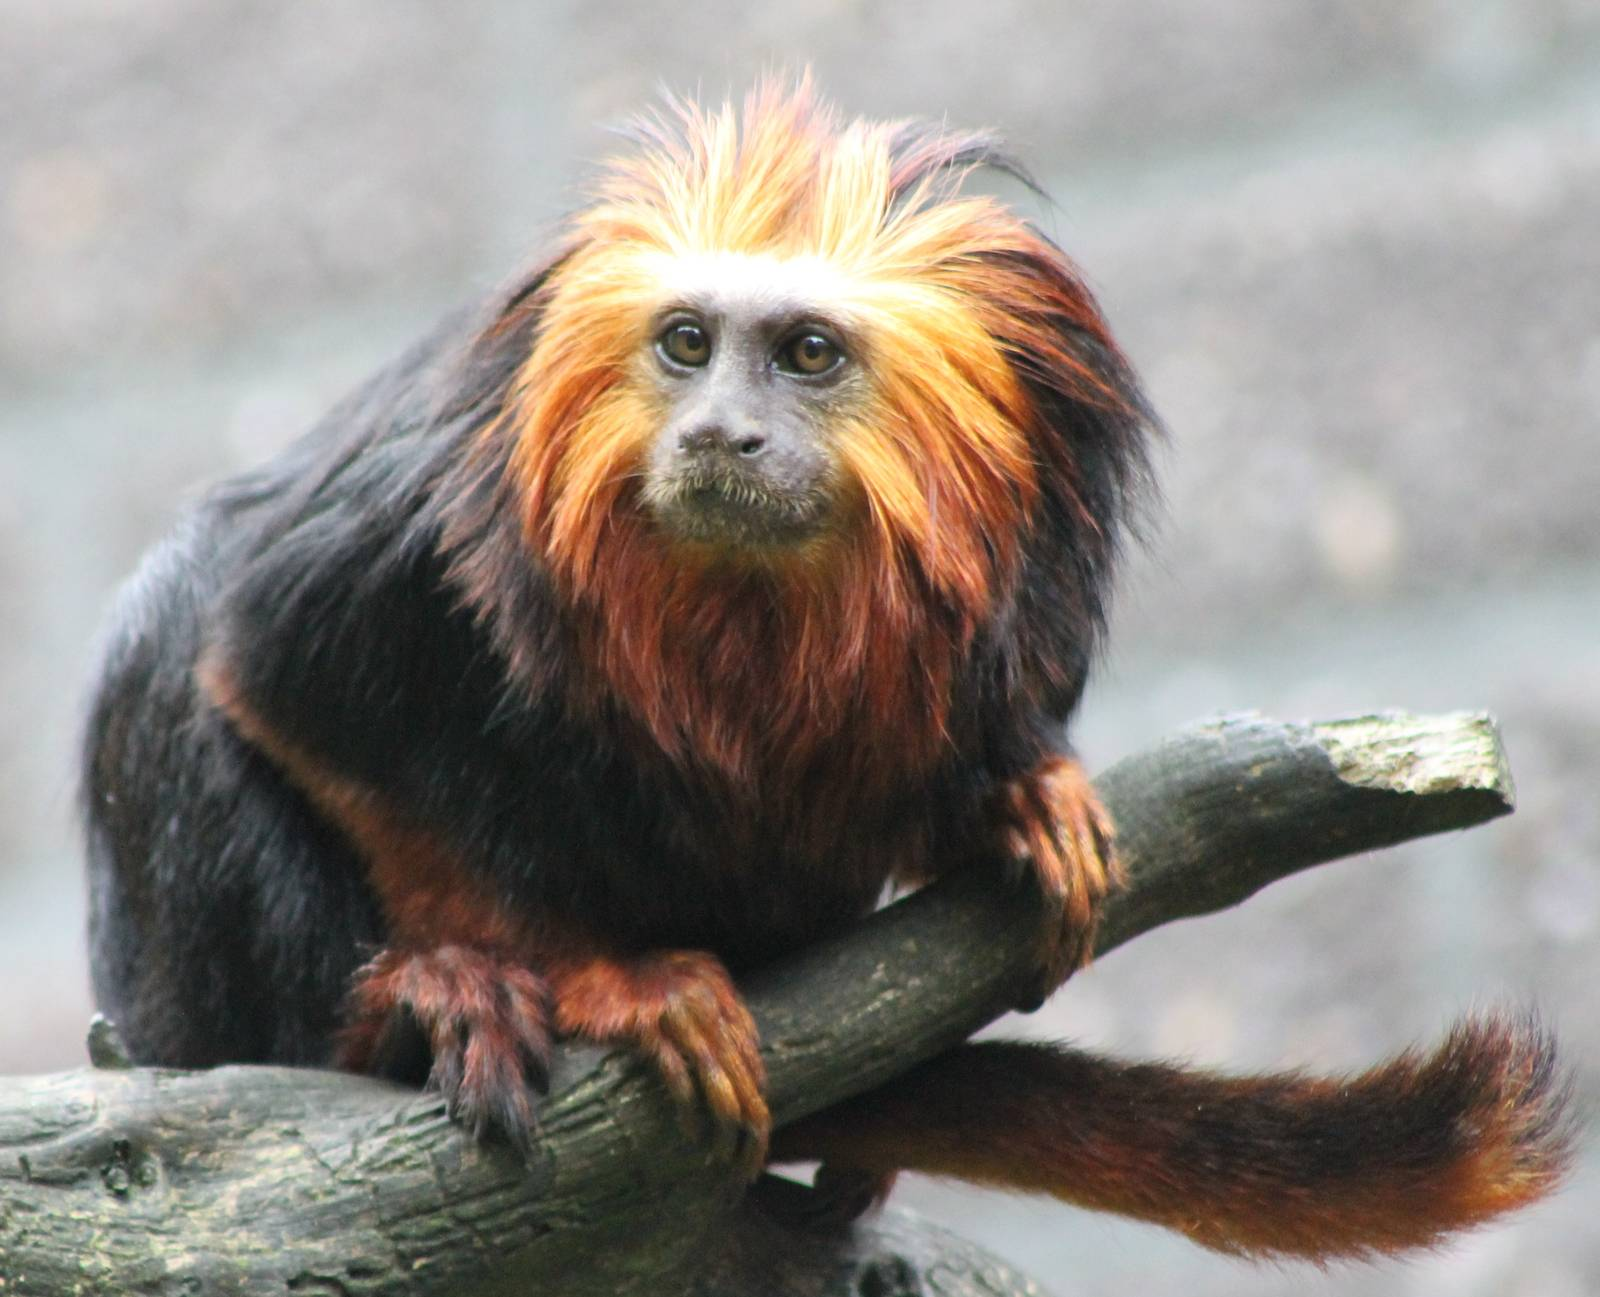 golden lion tamerin The golden lion tamarin is an endangered monkey living in the atlantic forest of brazil it is named for its orange and red fur around its face it is very small and light, with a long tail.